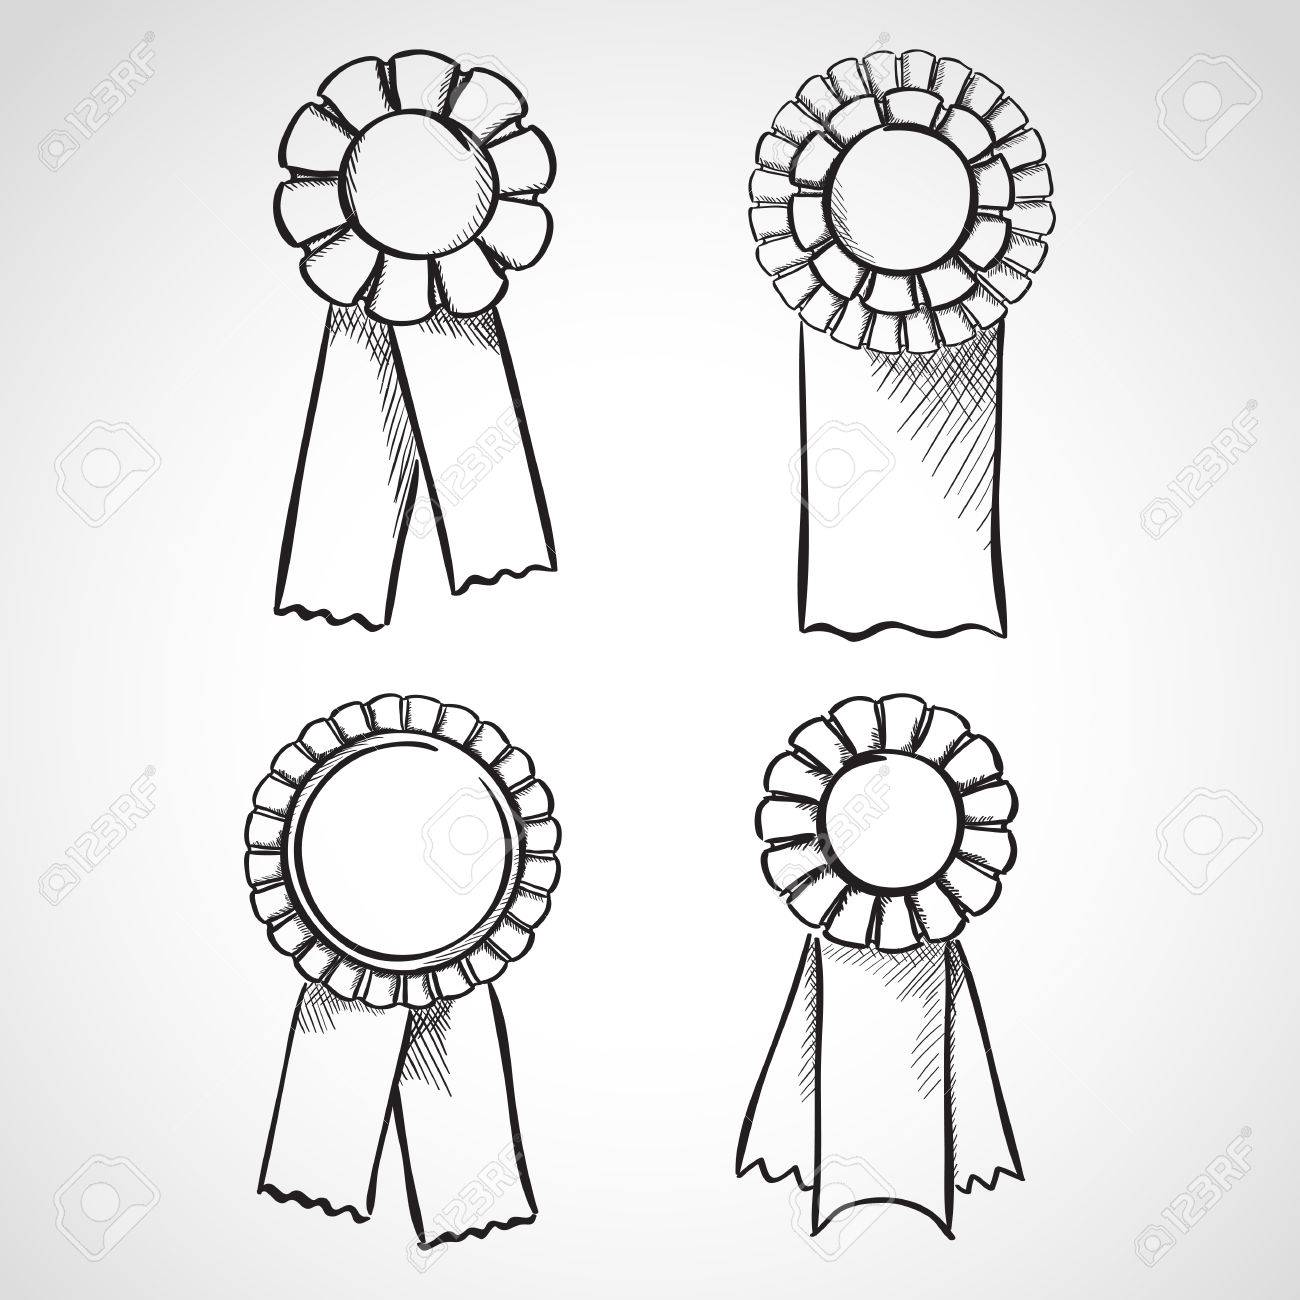 1300x1300 Set Of Sketch Prize Ribbons. Hand Drawn Illustration Royalty Free